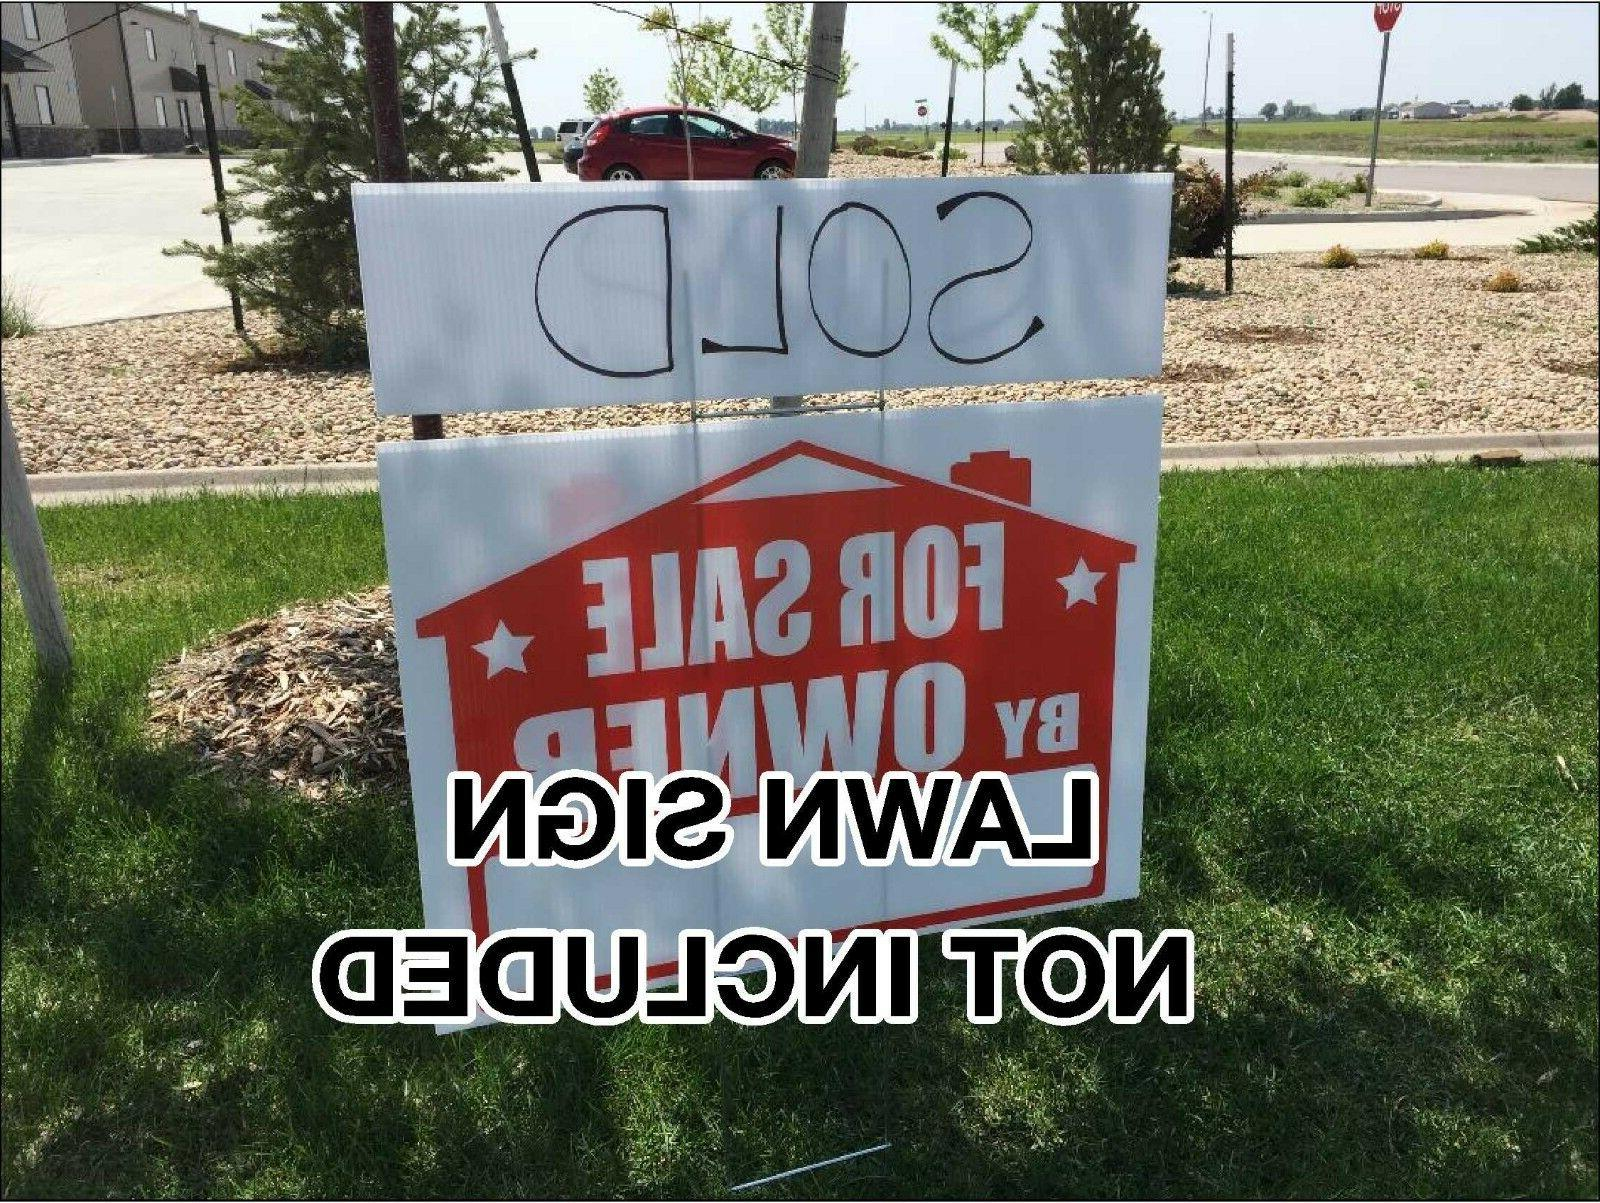 2019 Custom Corflute Pp Coroplast Blank Yard Signs 18x24 With H Stakes Find Complete Details About